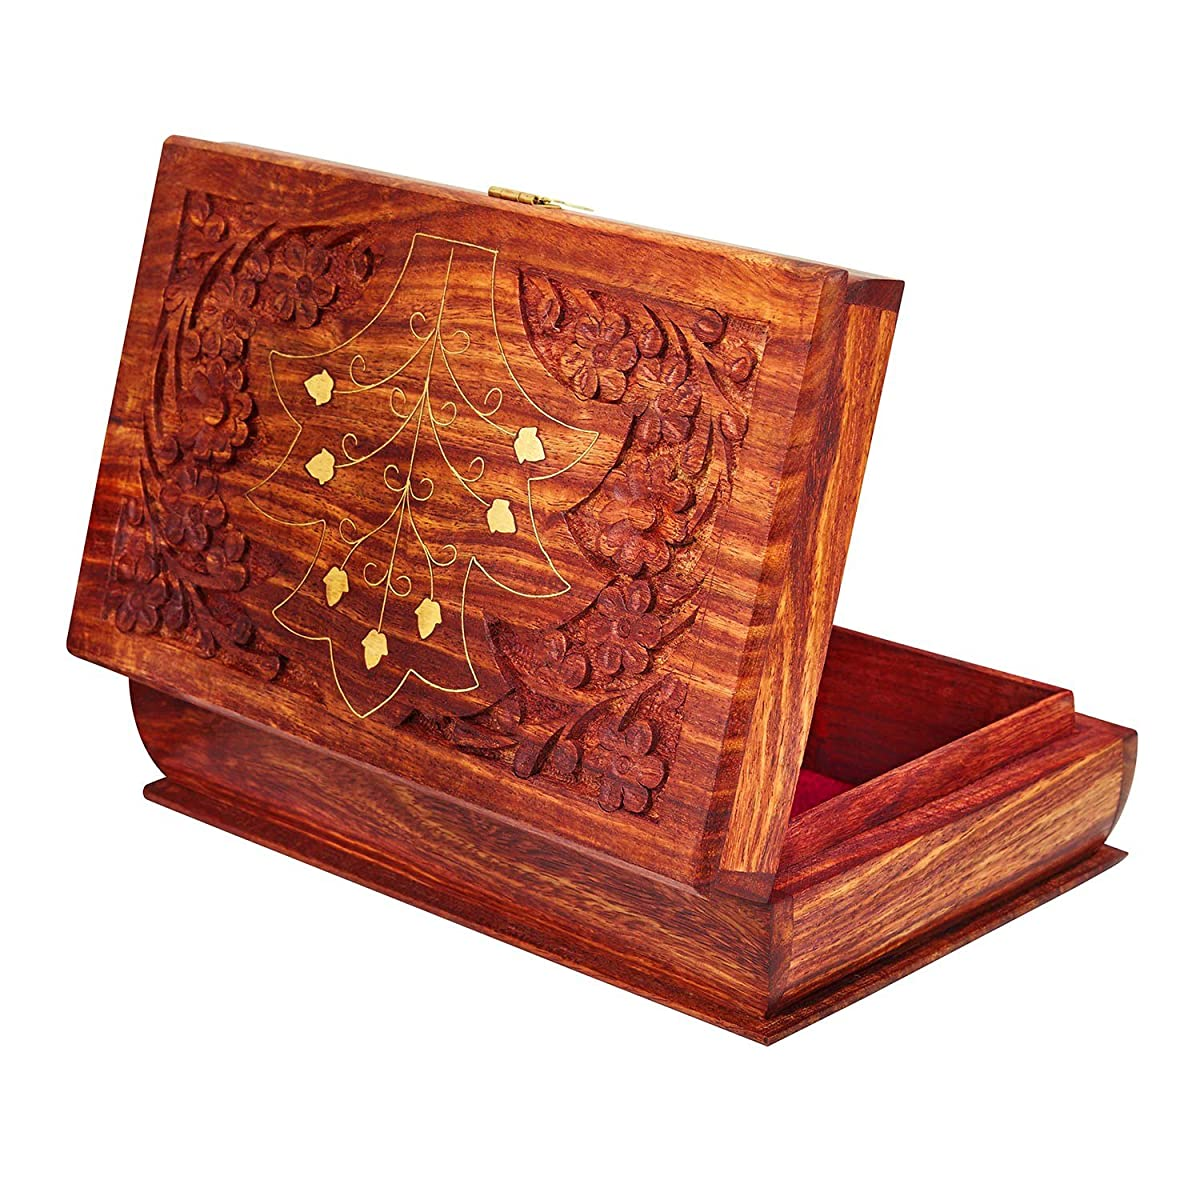 Handmade Wooden Jewelry Box With Free Lock Amp Key Keepsake